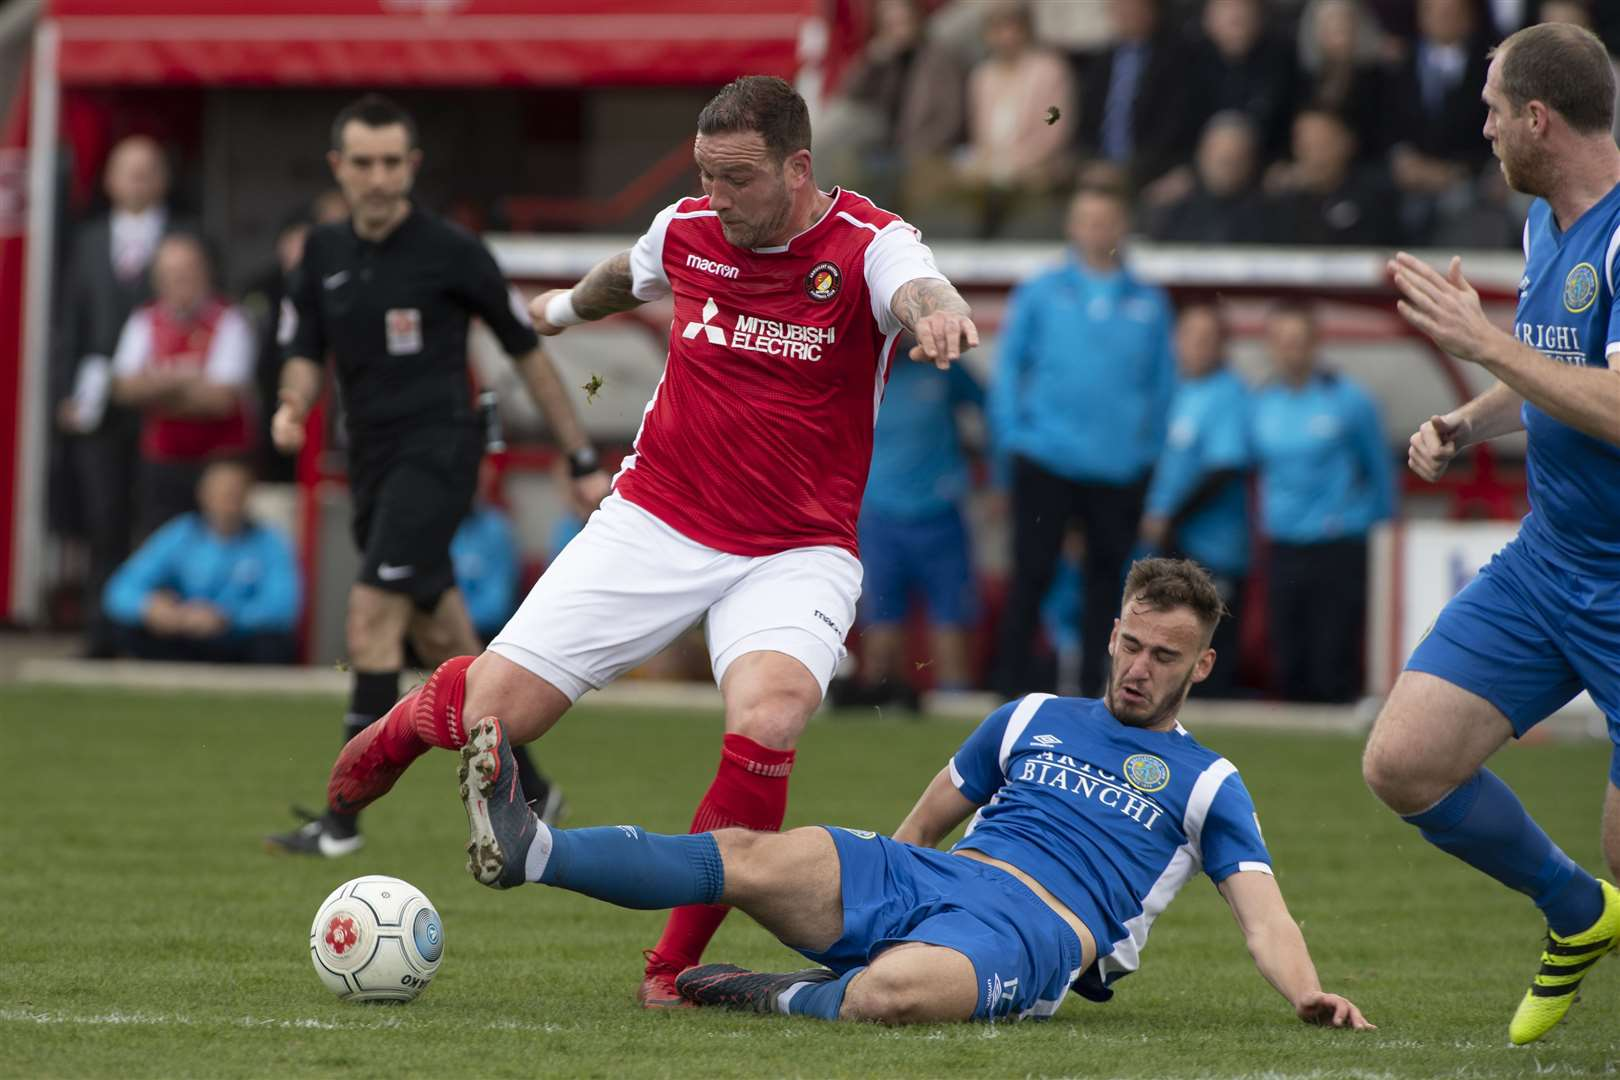 Danny Kedwell goes for goal against Macclesfield Picture: Andy Payton